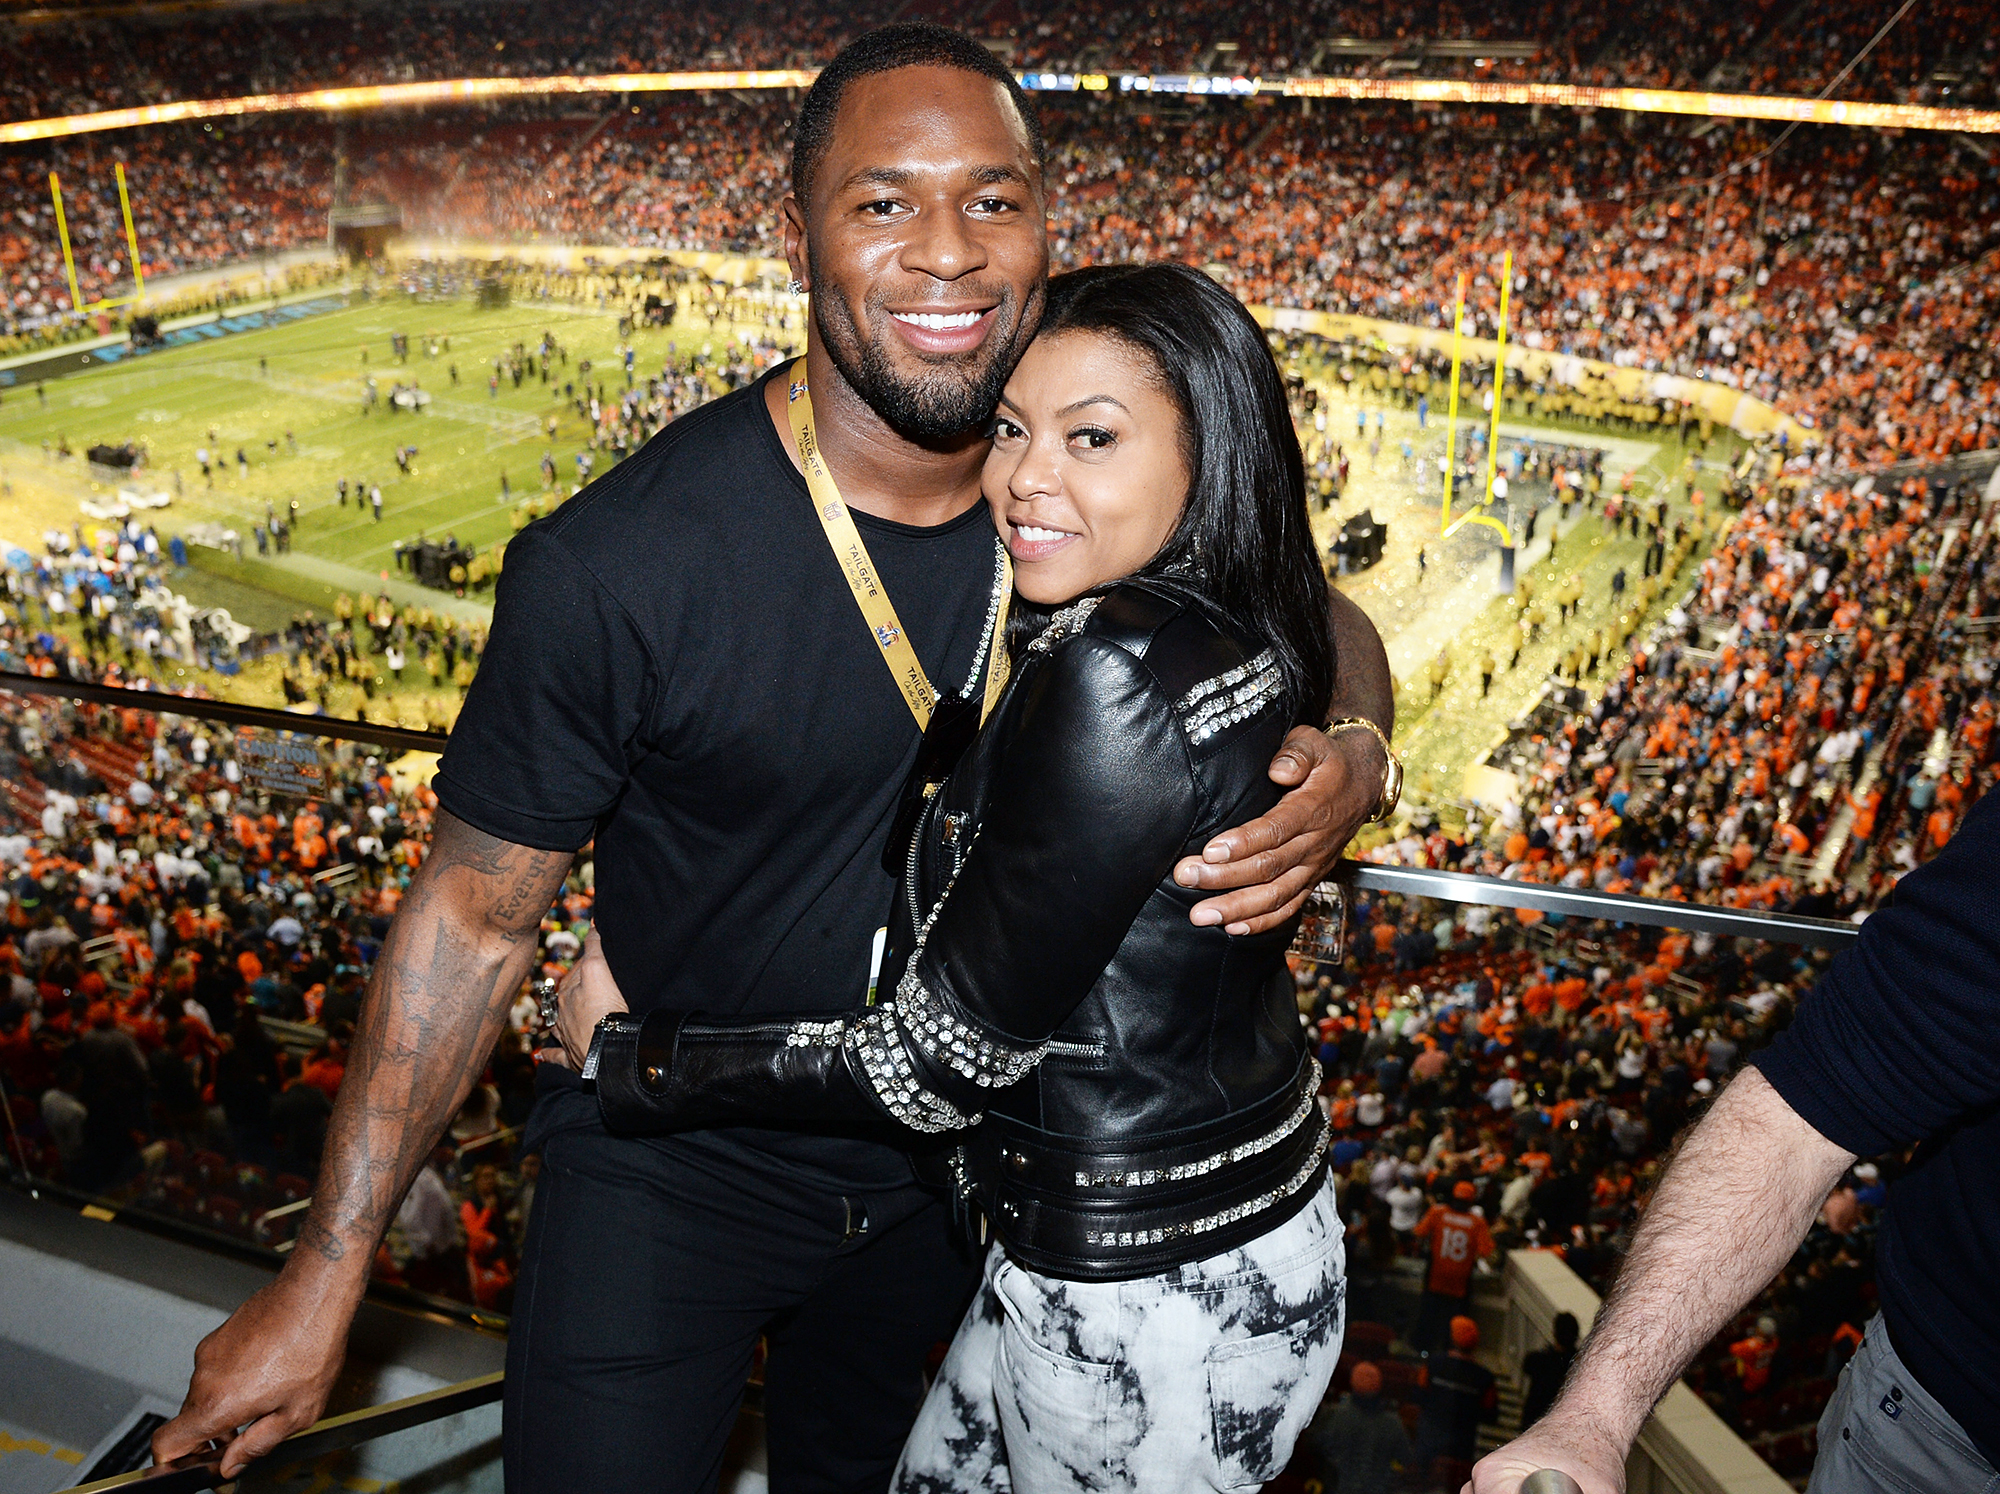 Taraji P. Henson Engaged to Kelvin Hayden - See Her Ring!